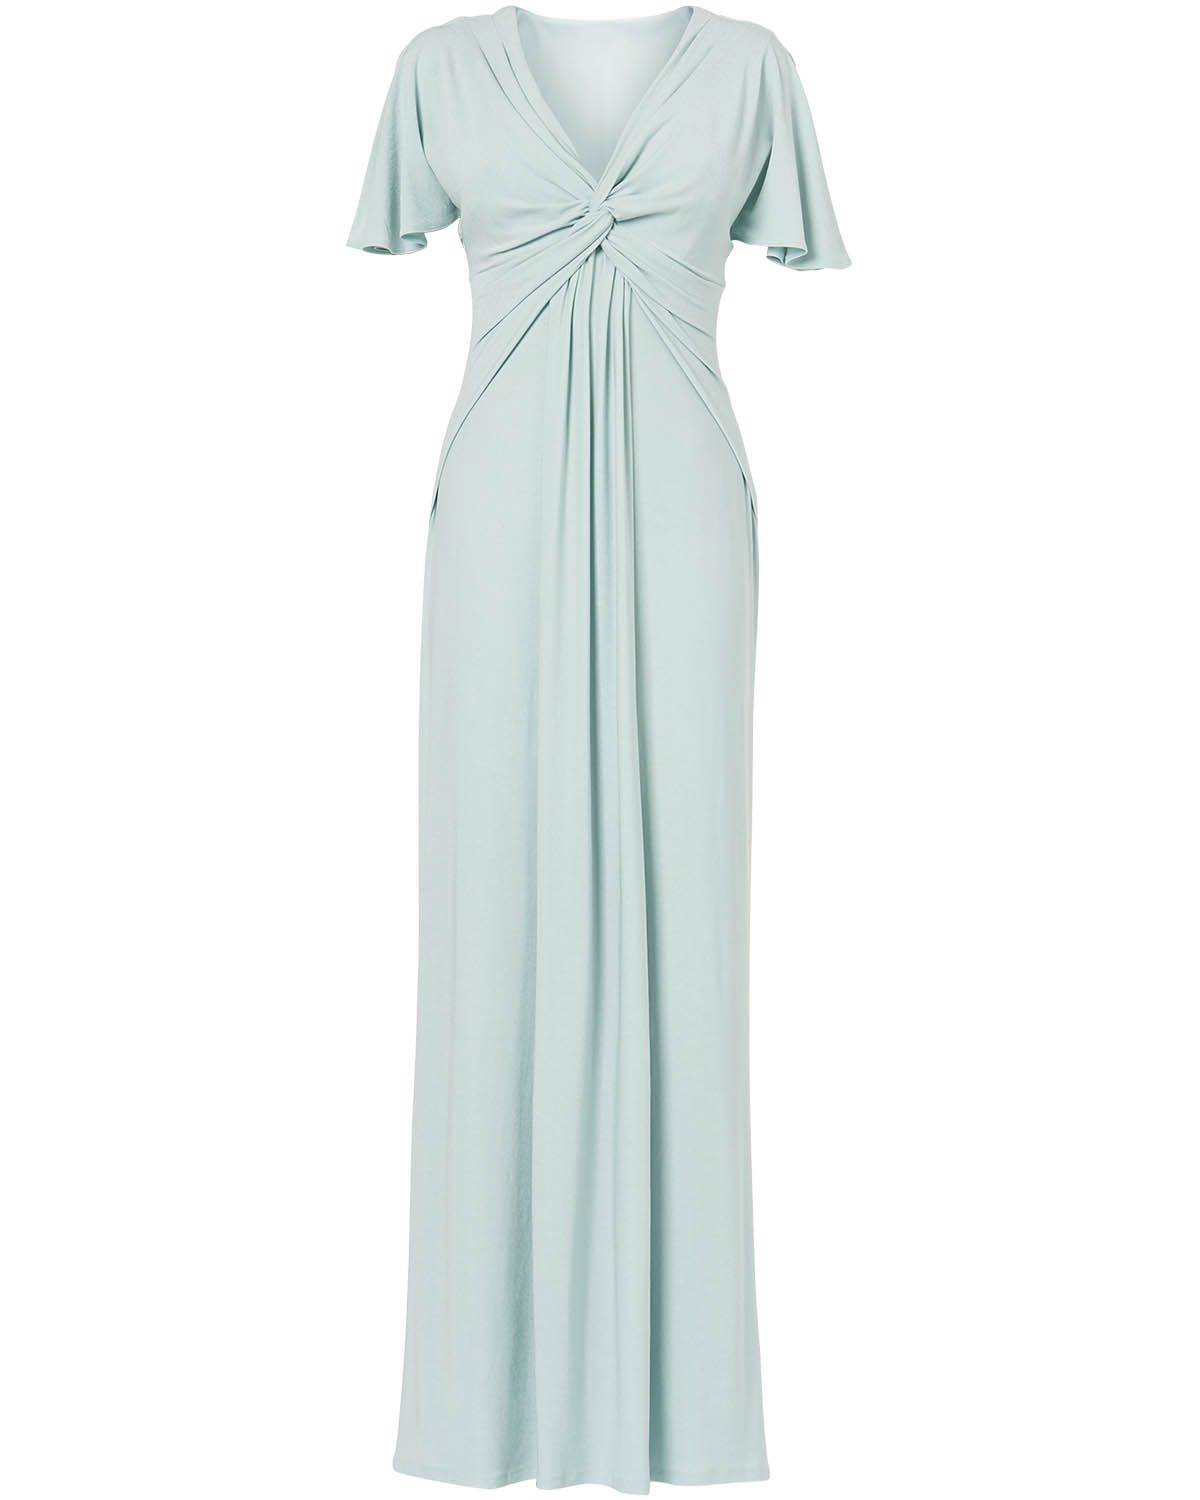 All Clothing | Blue Claudia Maxi Dress | Phase Eight. Currently in ...